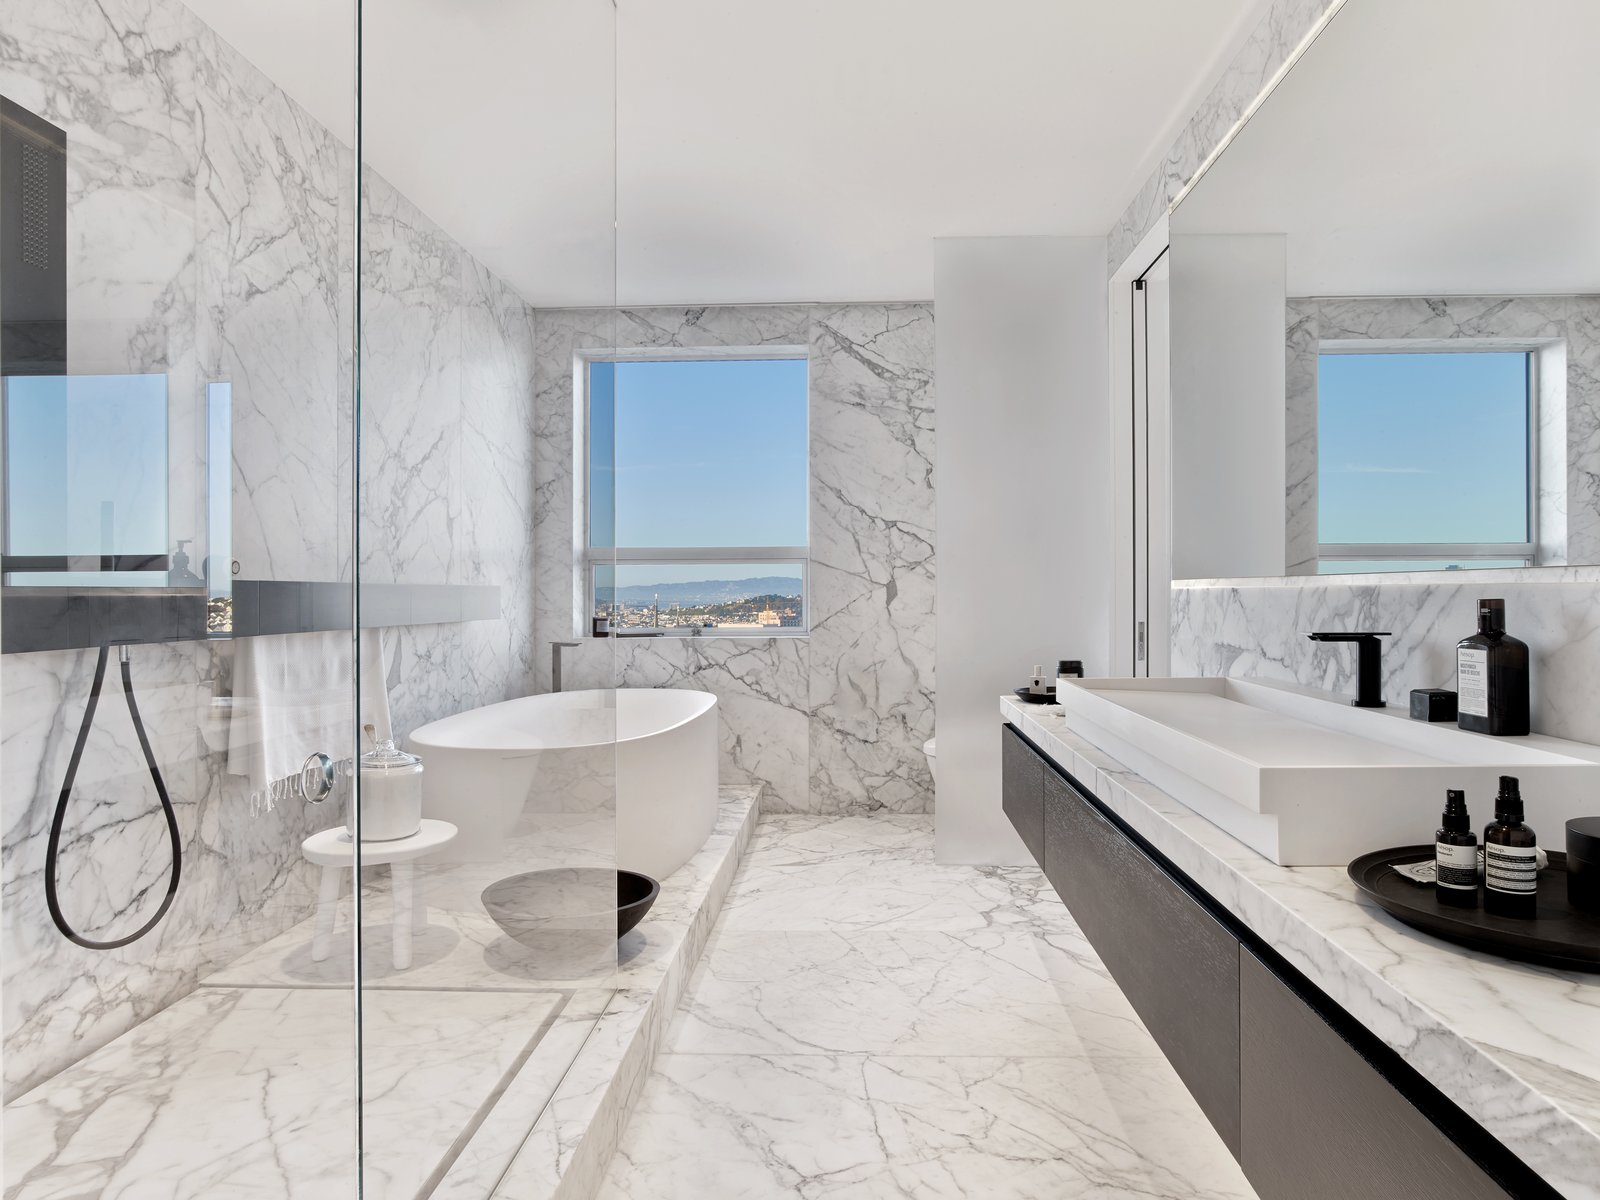 Master bath Tagged: Bath Room, Marble Floor, Vessel Sink, Freestanding Tub, Marble Counter, Soaking Tub, Enclosed Shower, Corner Shower, and Marble Wall.  Glen Park Residence by CCS Architecture